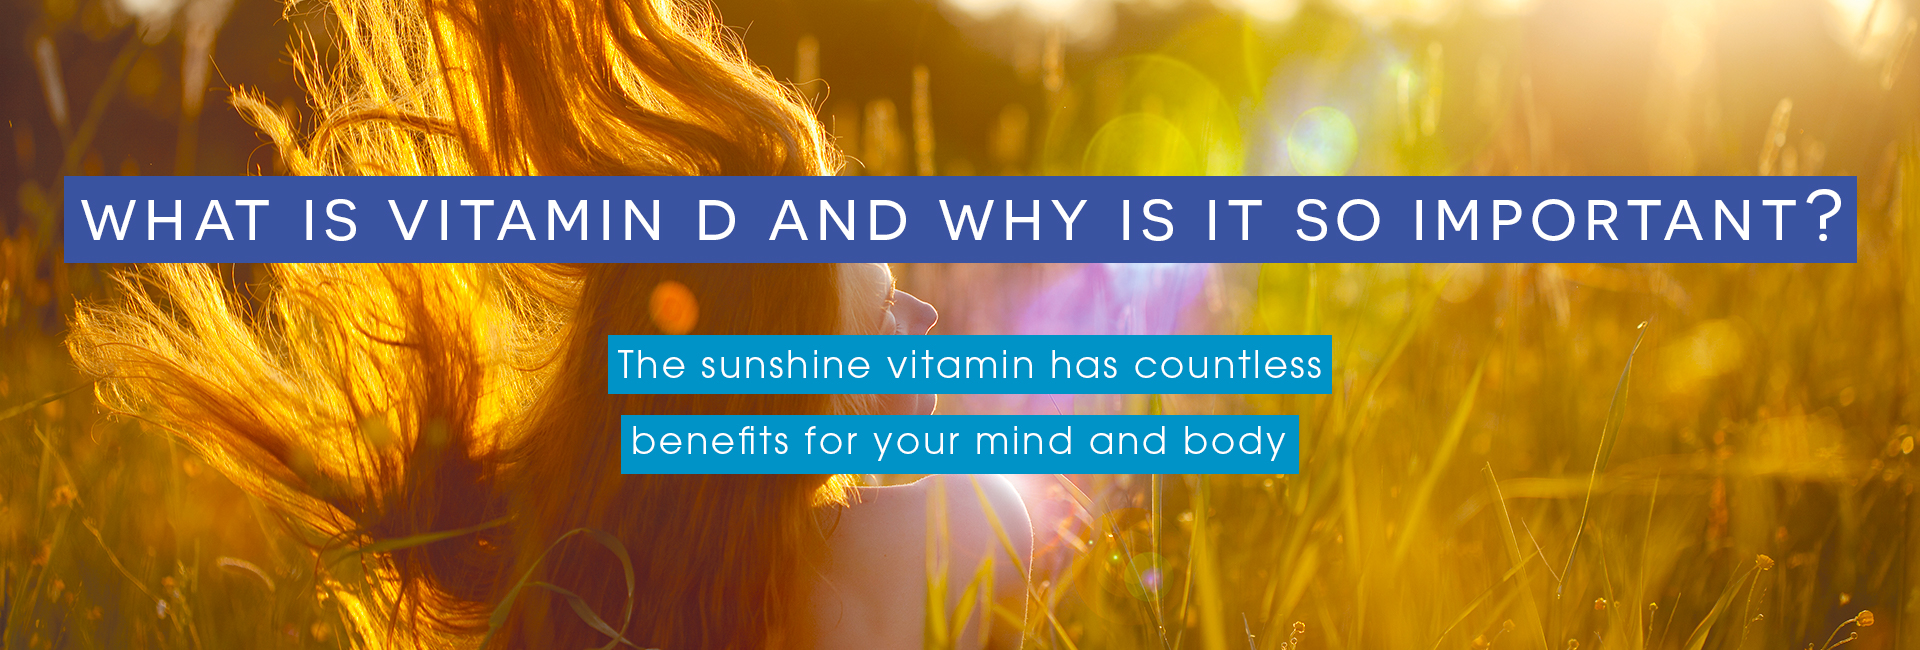 what is Vitamin D and why is it so important cover